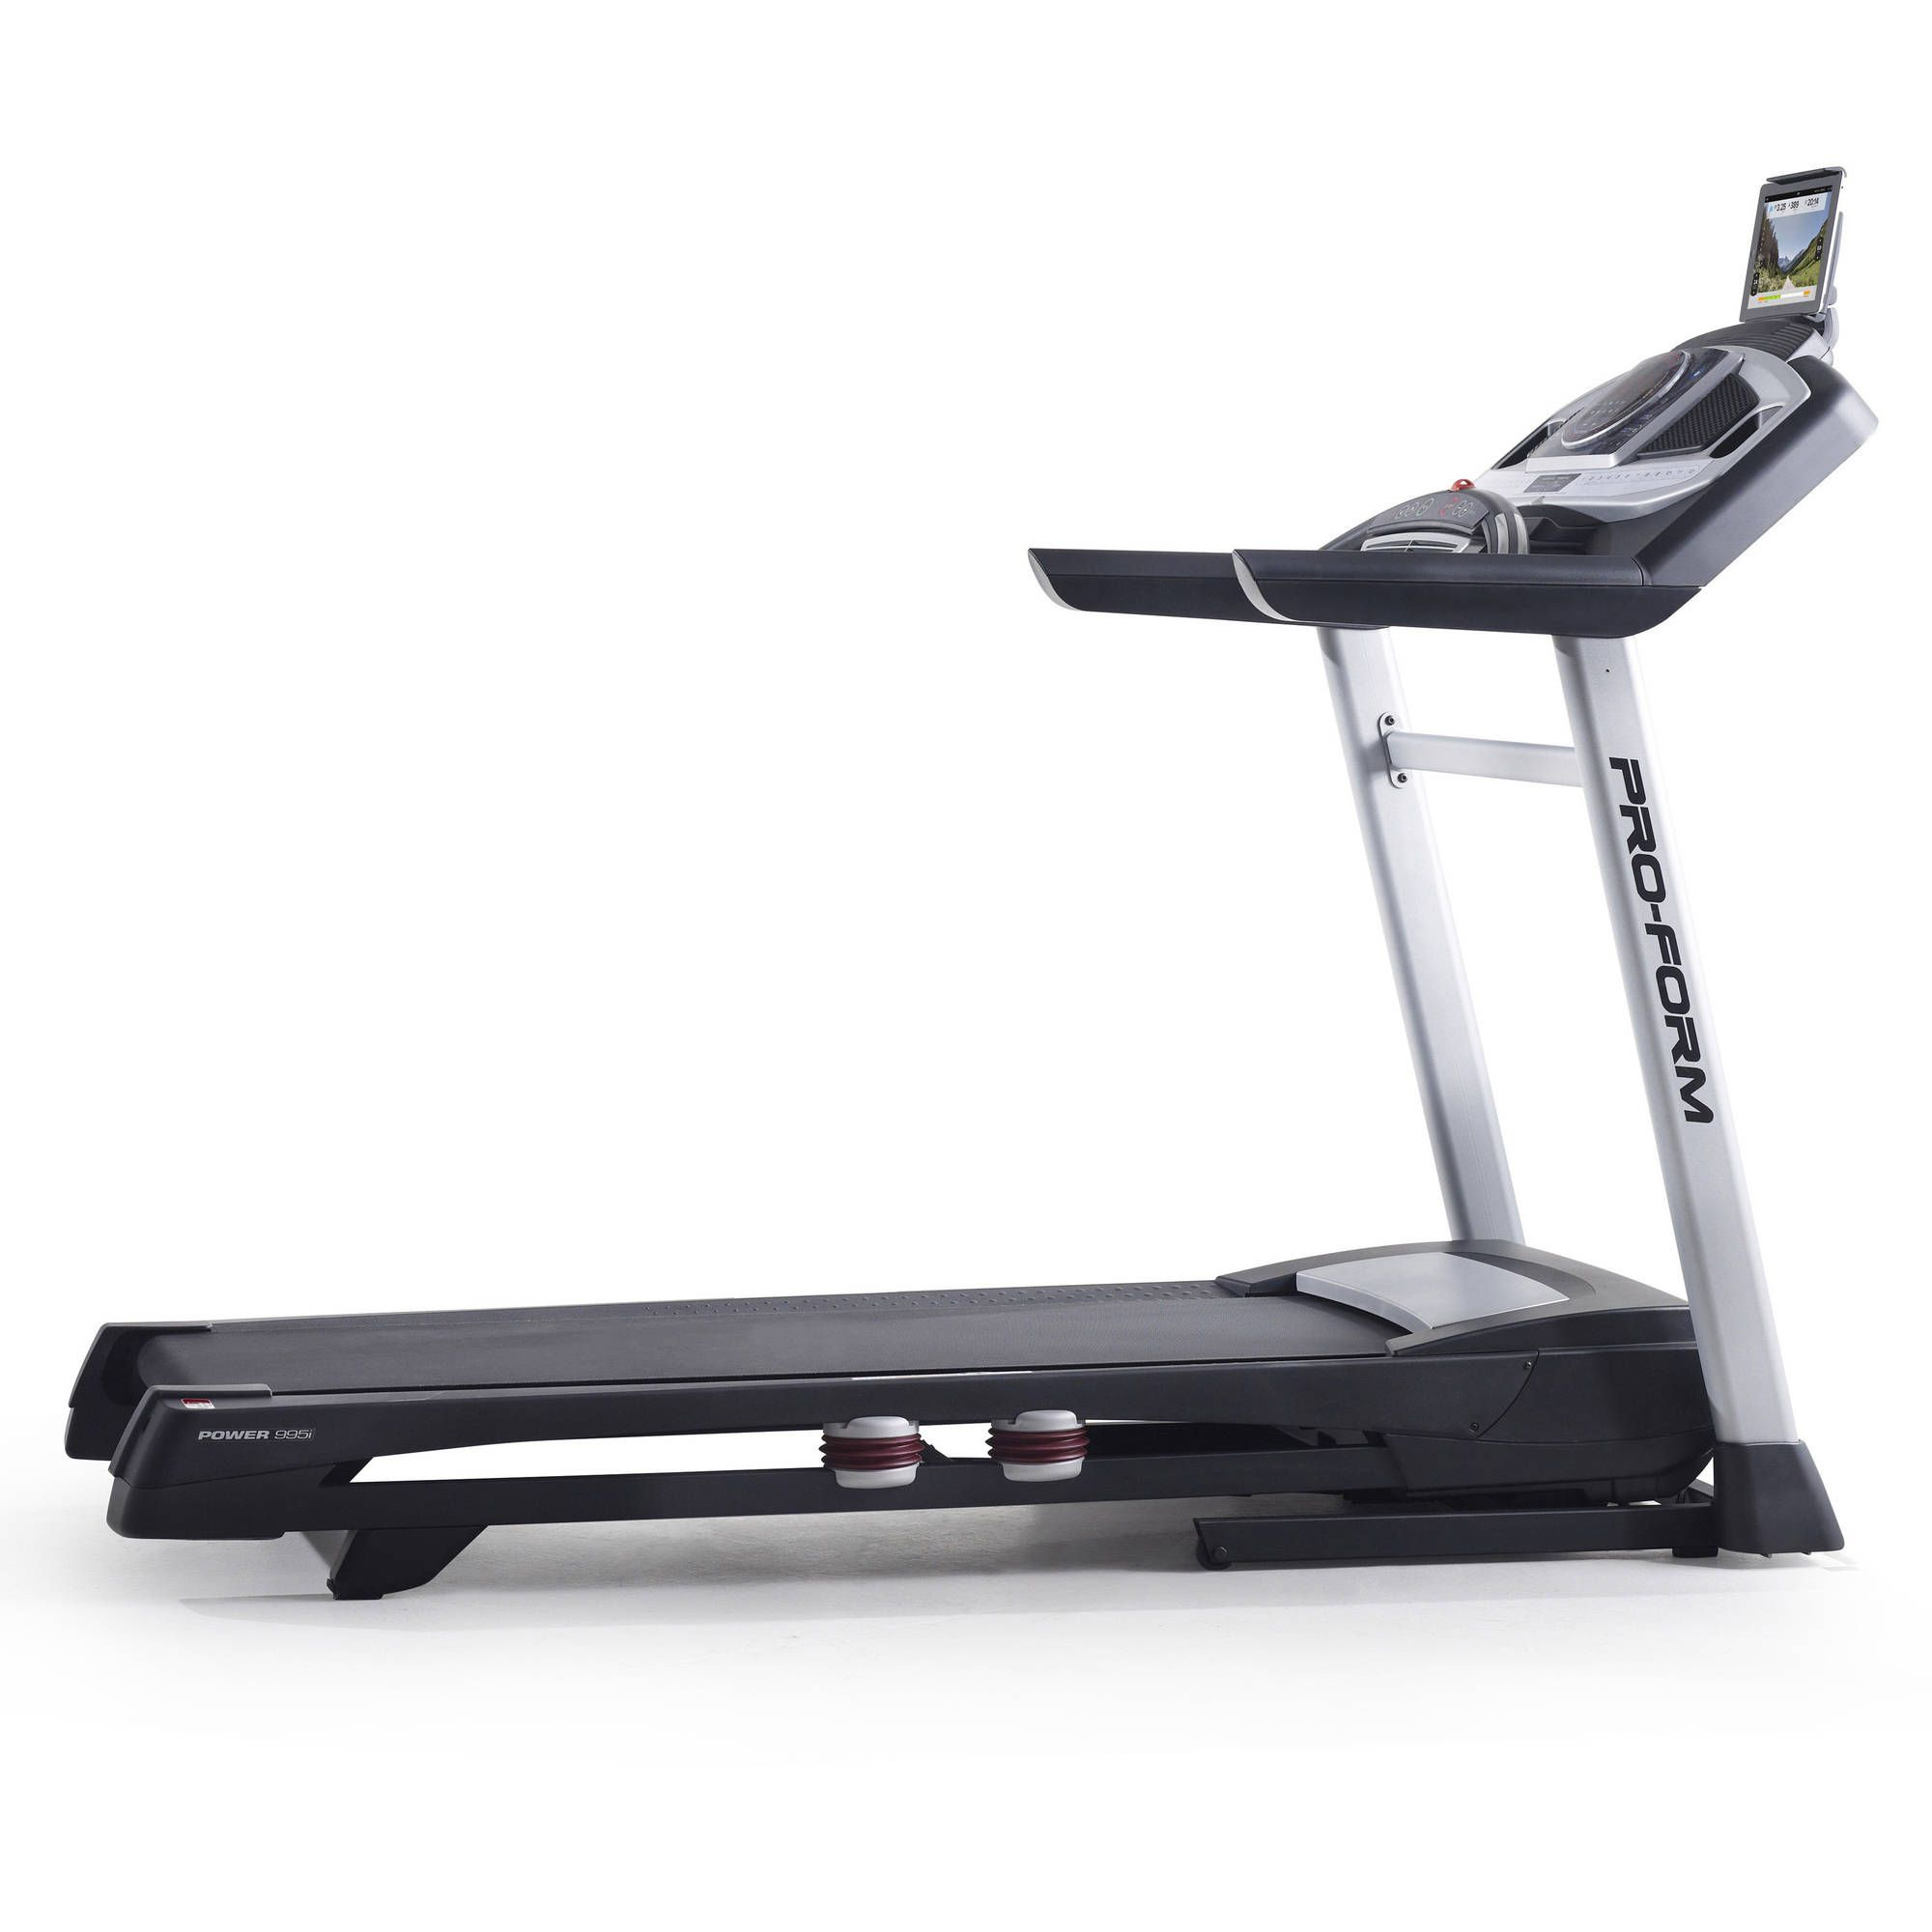 Save Big on This Treadmill at Walmart